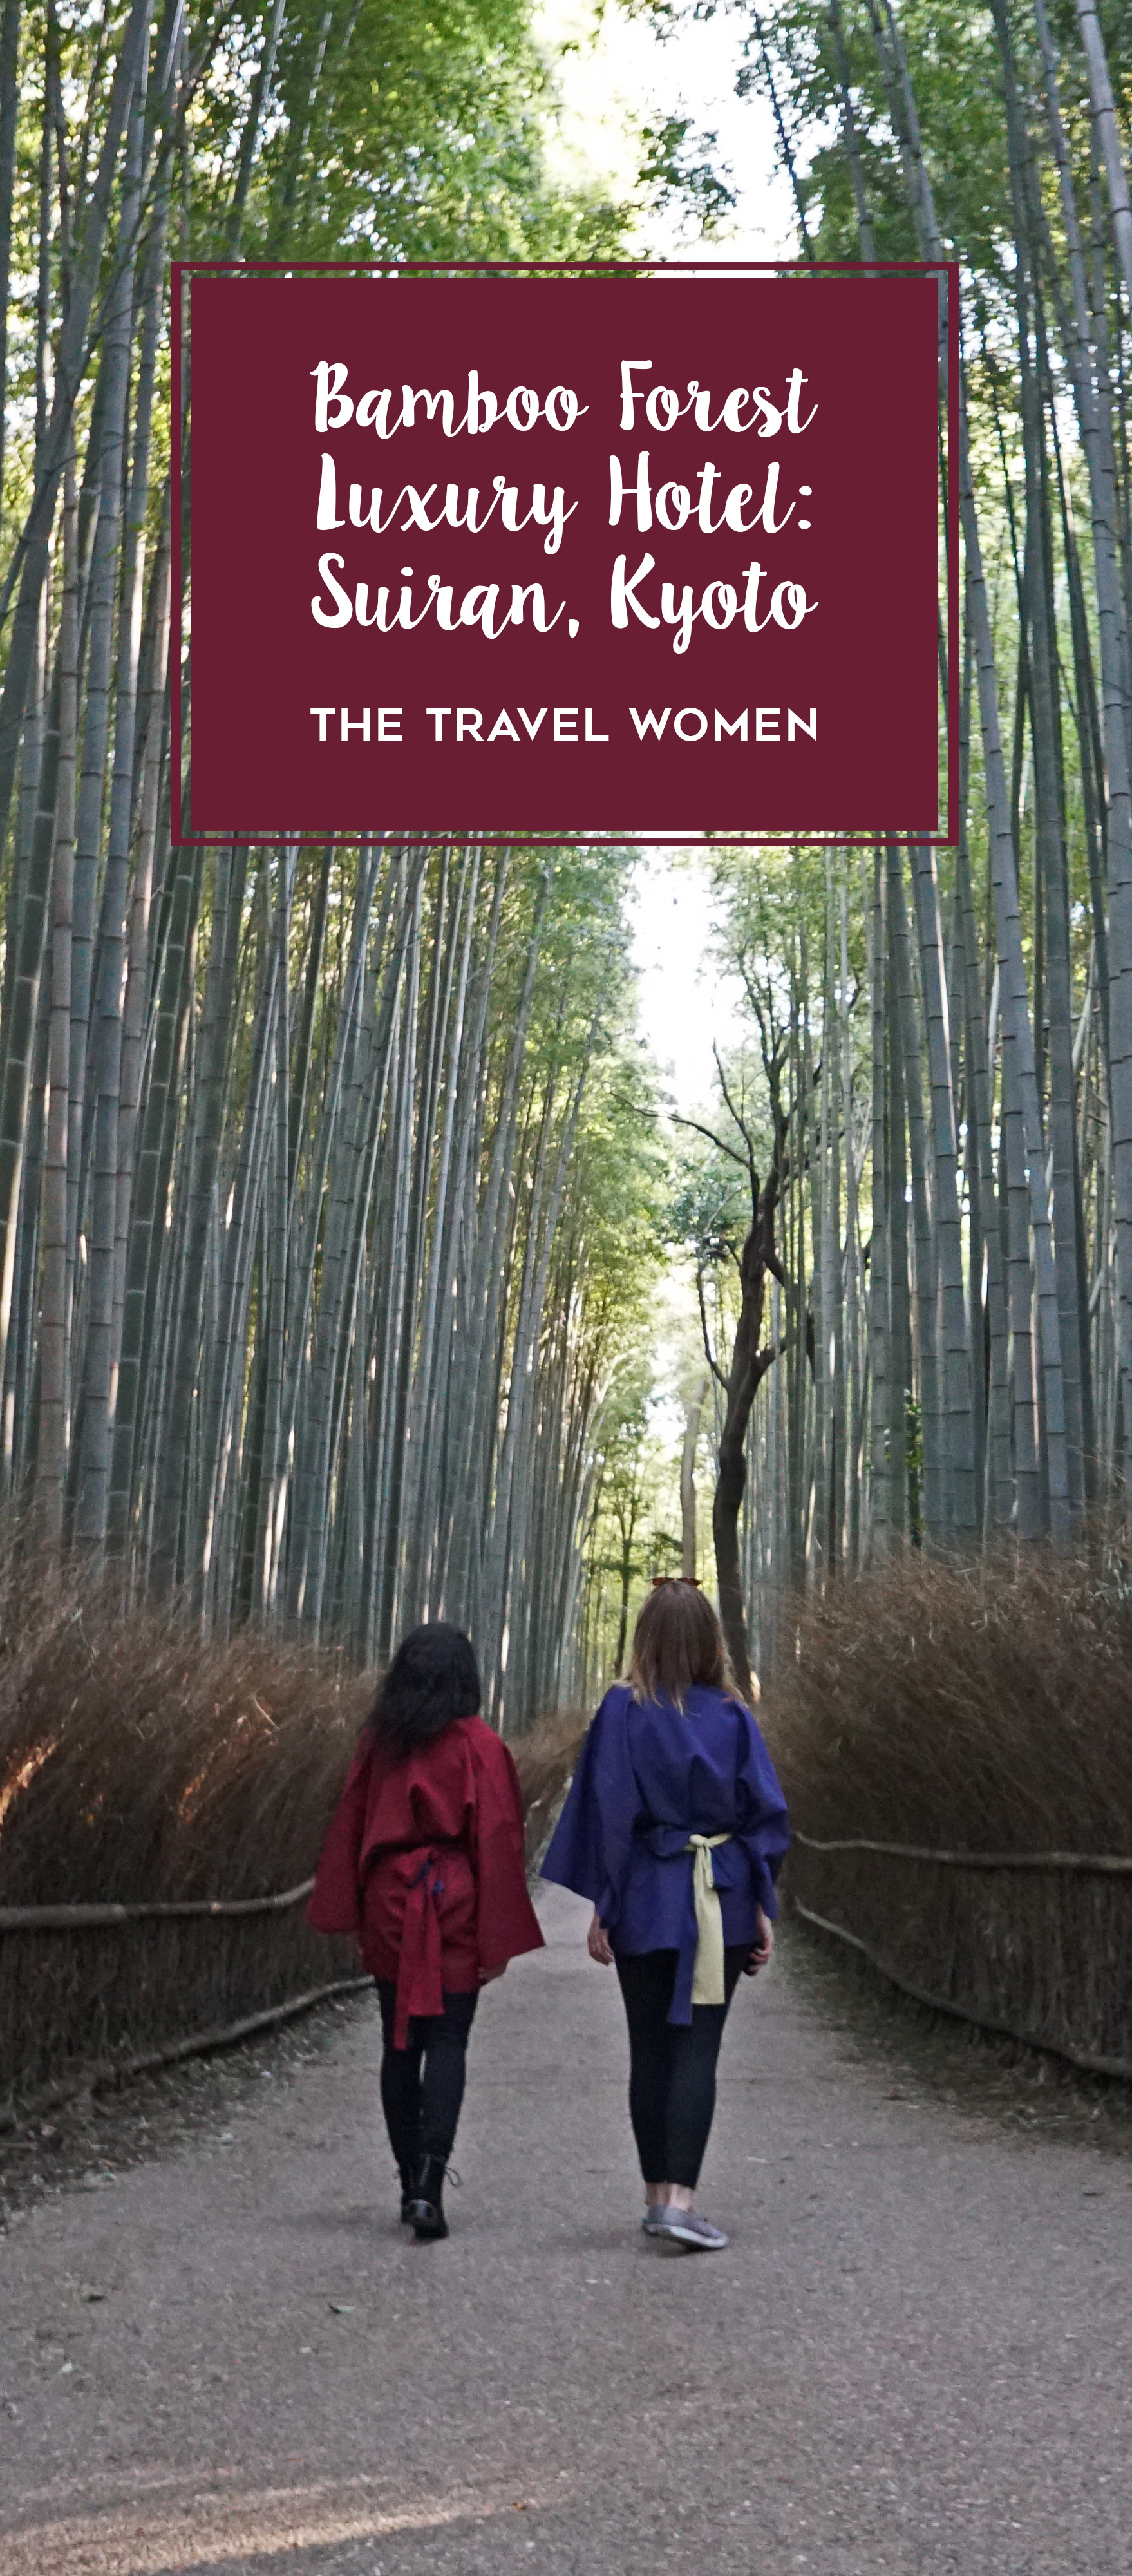 Suiran Kyoto title on image of two women in the bamboo forest